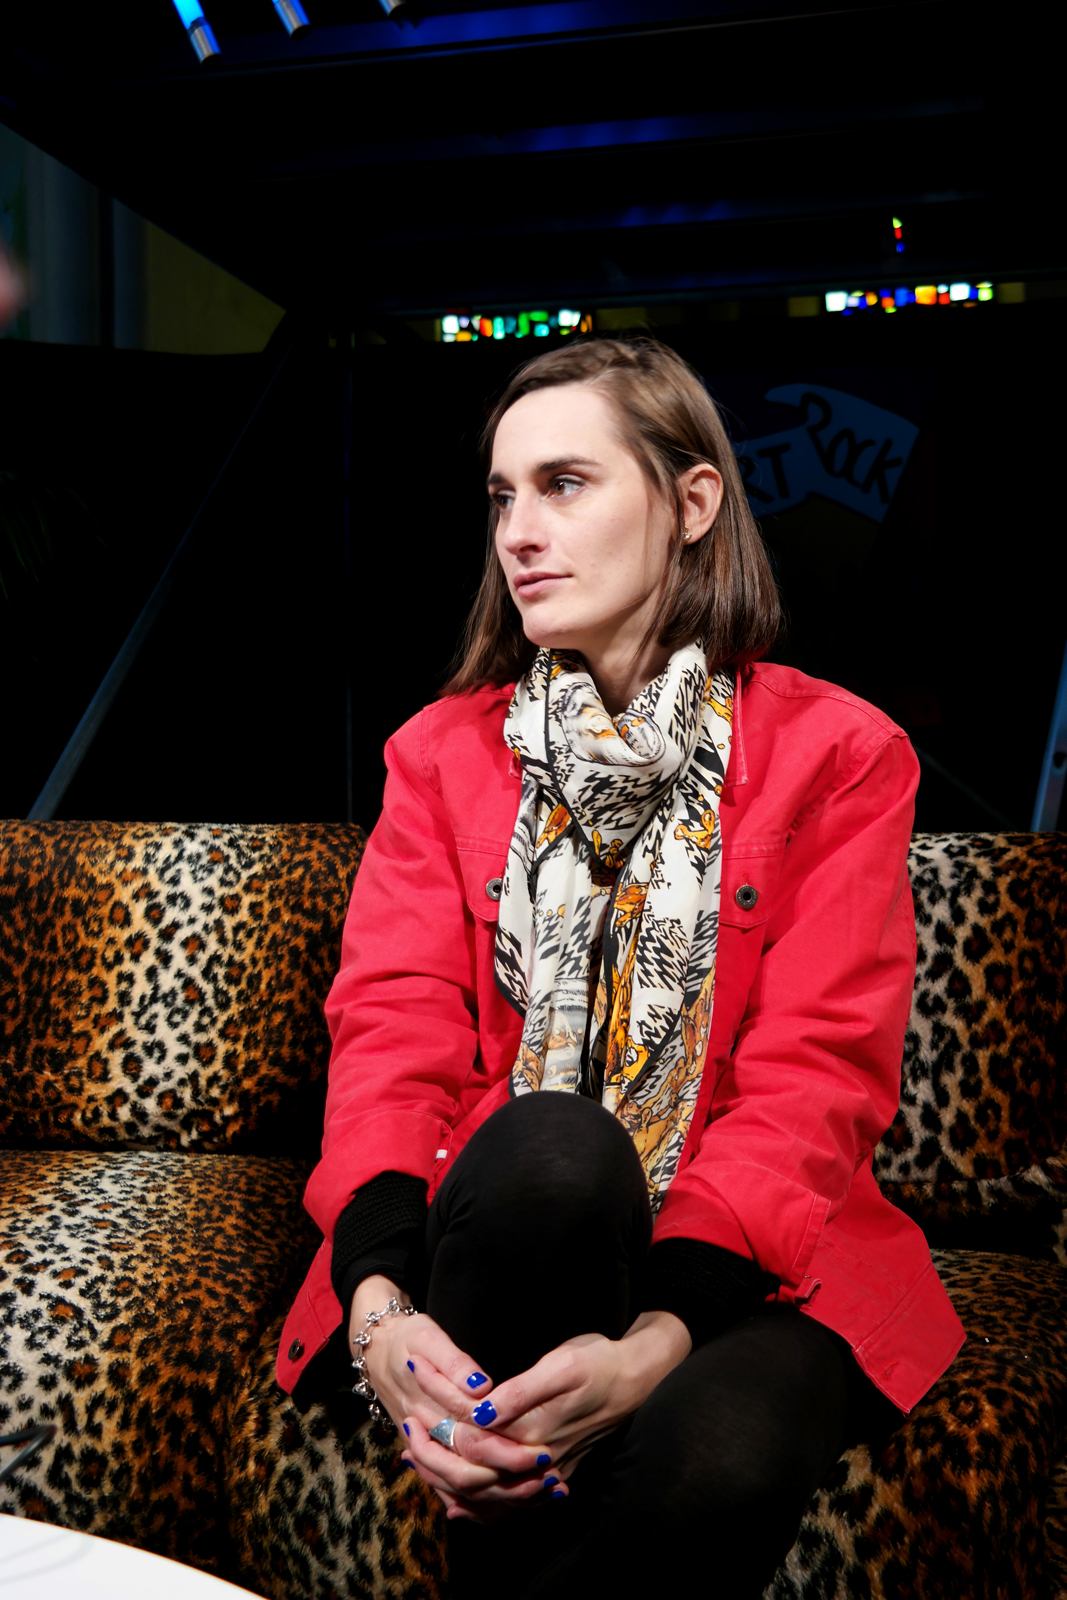 Yelle concert art rok 2015 festival saint brieuc Julie Budet interview conférence de presse bretagne tournée complétement fou tour photo by united states of paris blog